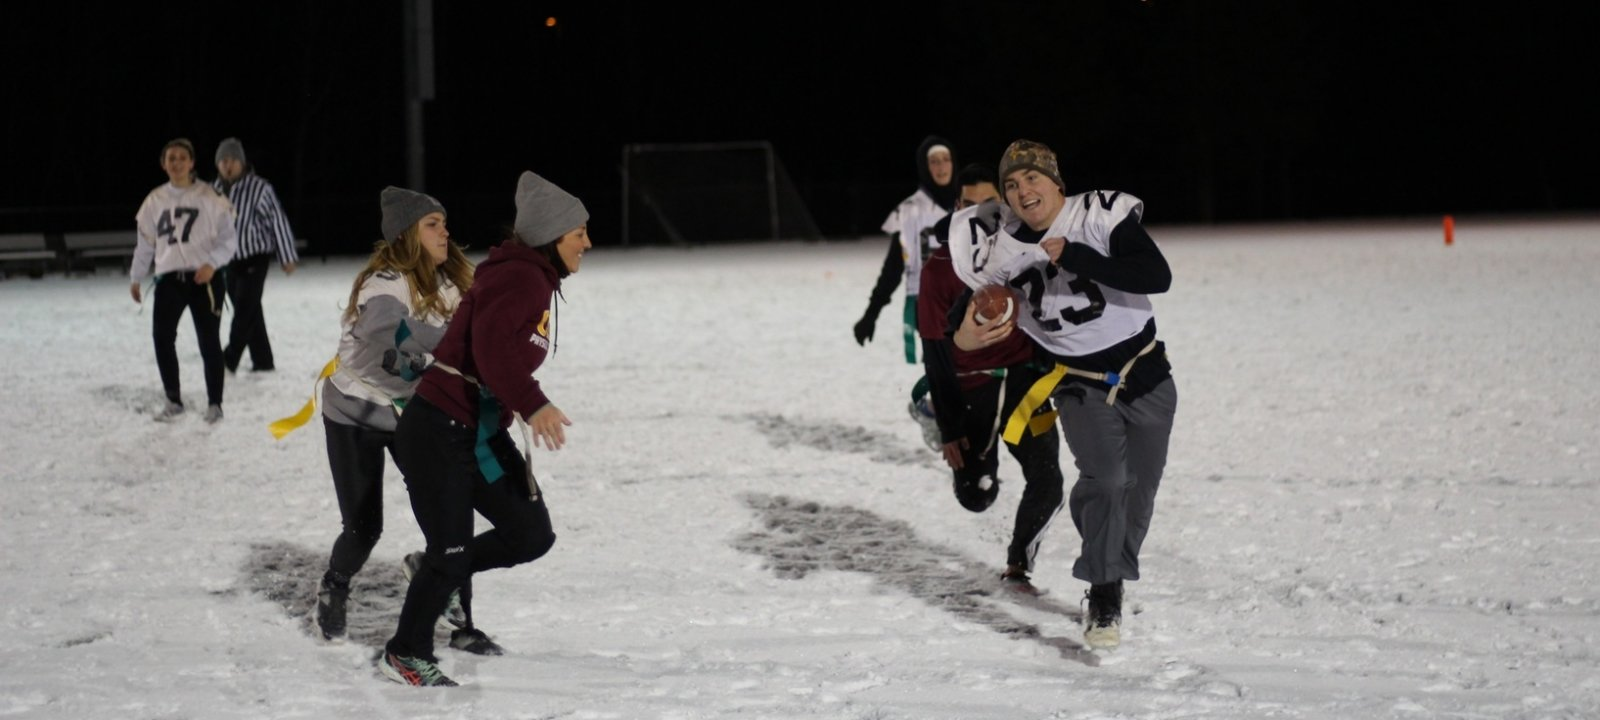 Michigan Tech Students playing flagg football in snow